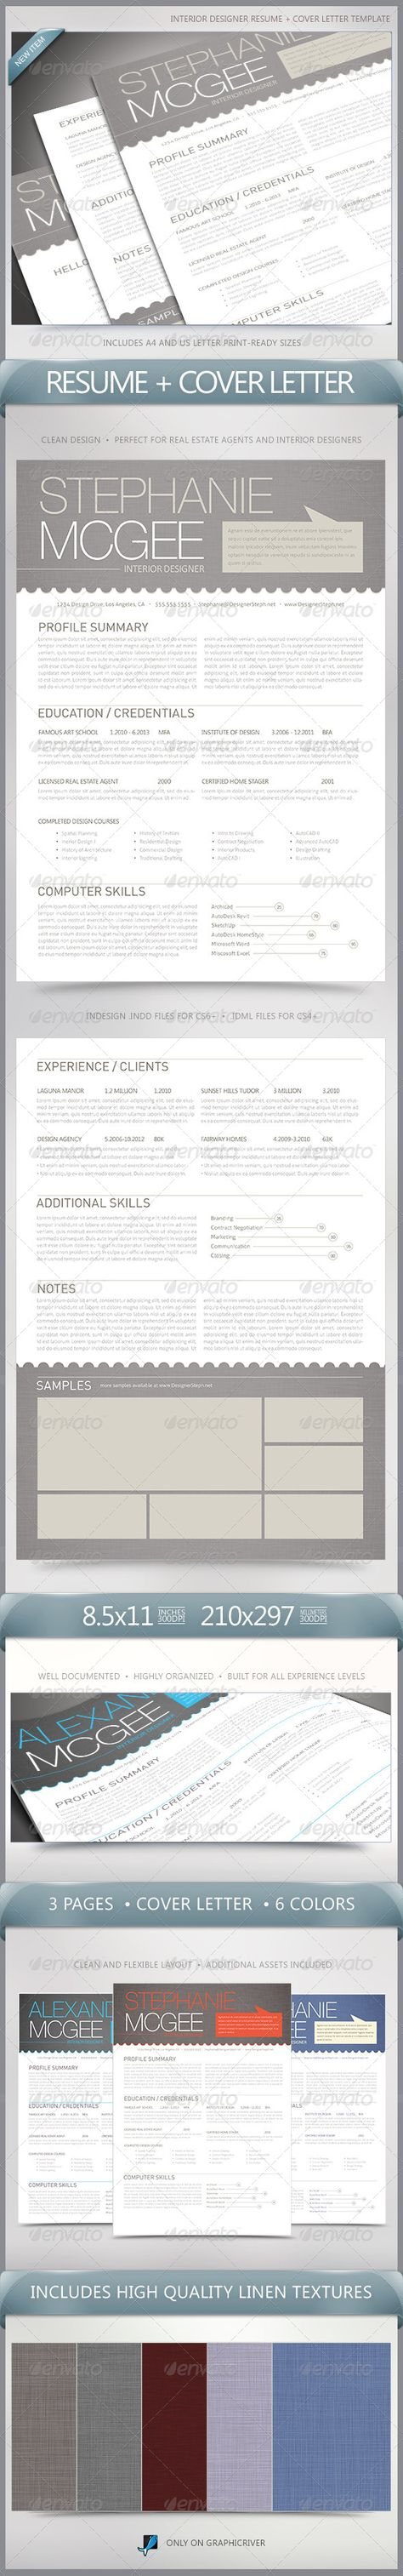 interview questions for interior designers awesome interior interior design portfolio for job interview trend home design and